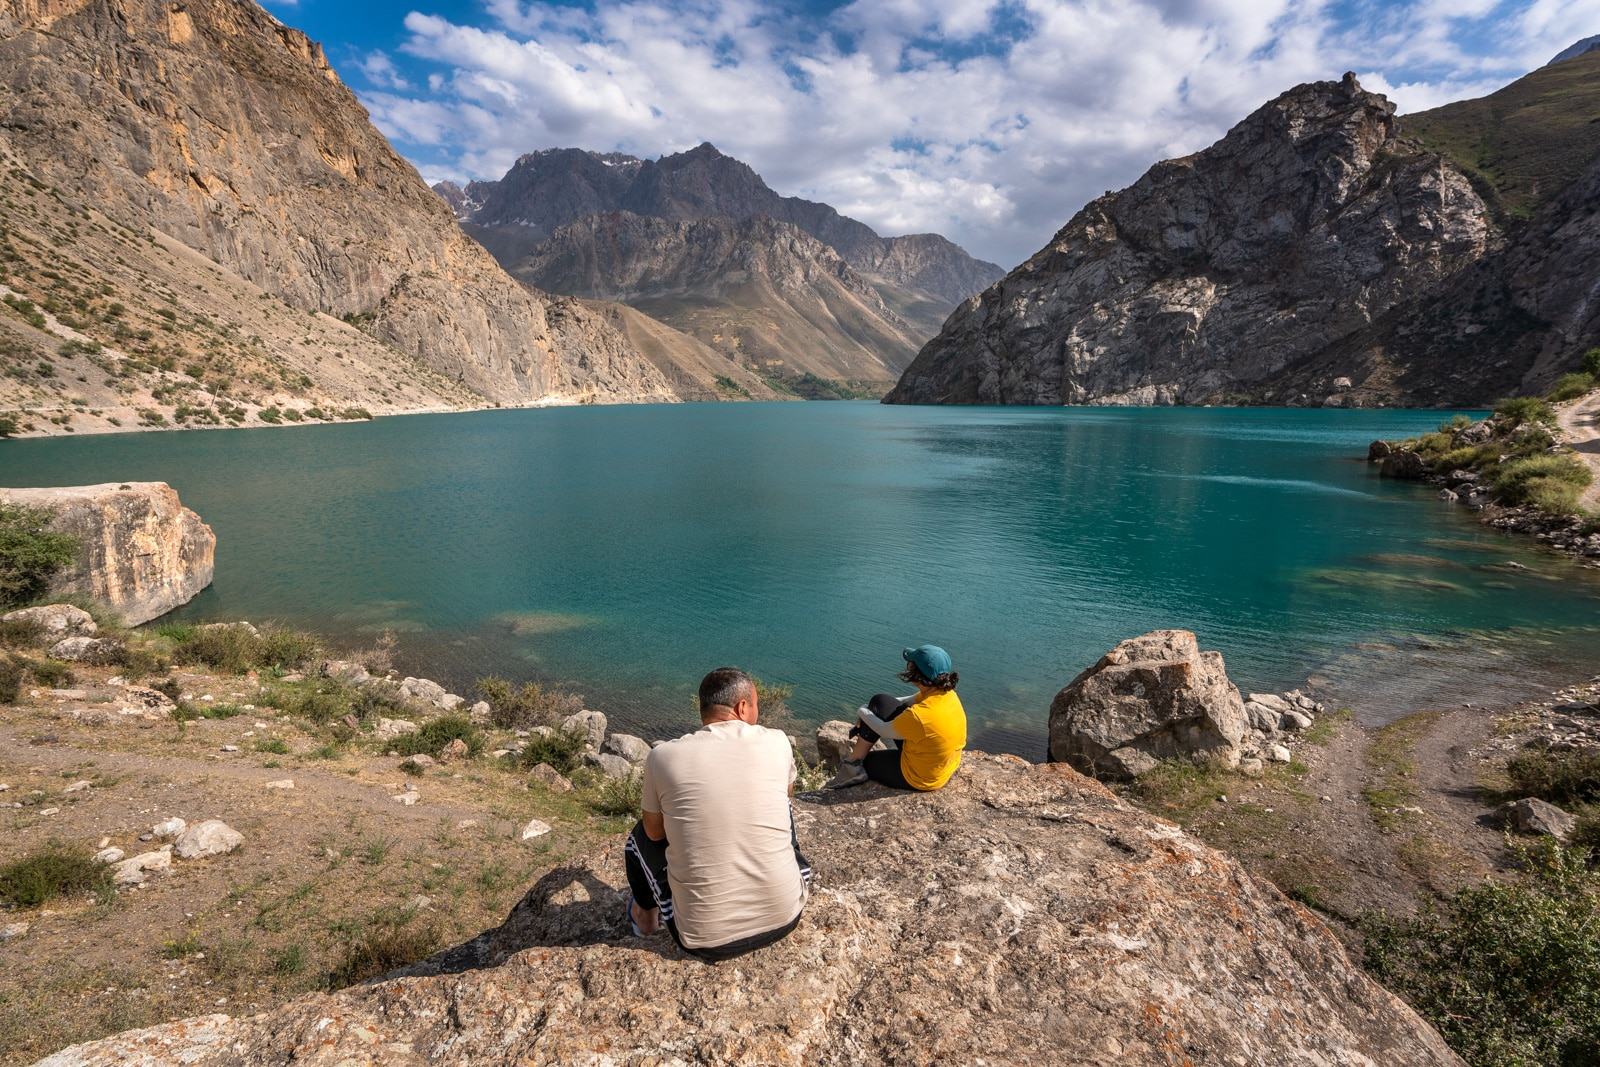 People sitting by one of the Haft Kol in Tajikistan